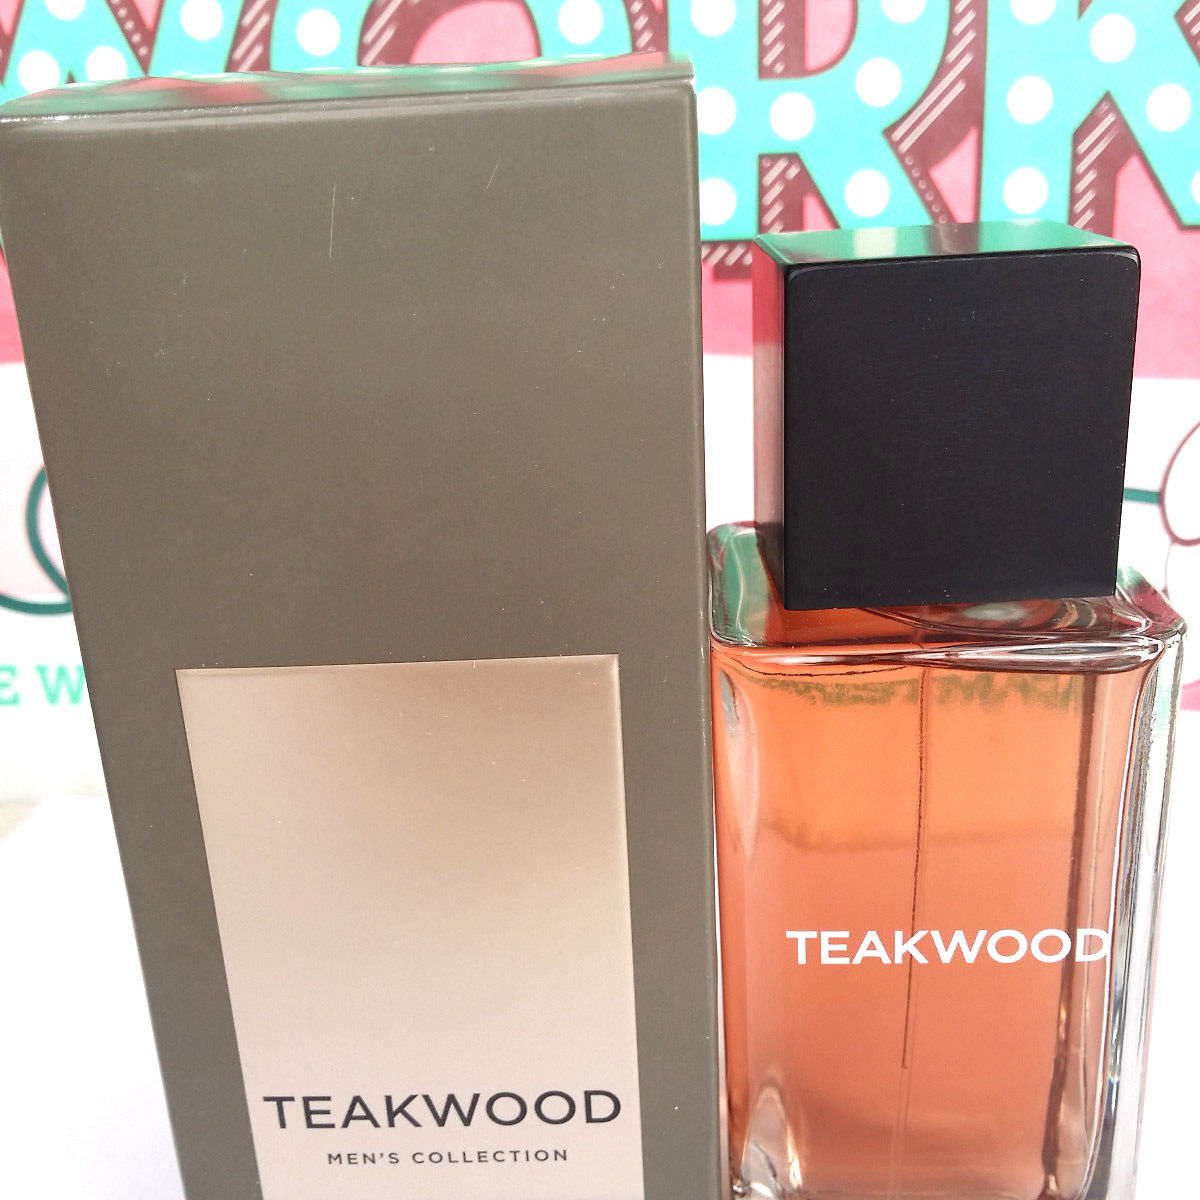 Bath and Body Works Teakwood Men's Collection 3.4 Ounce Cologne Spray